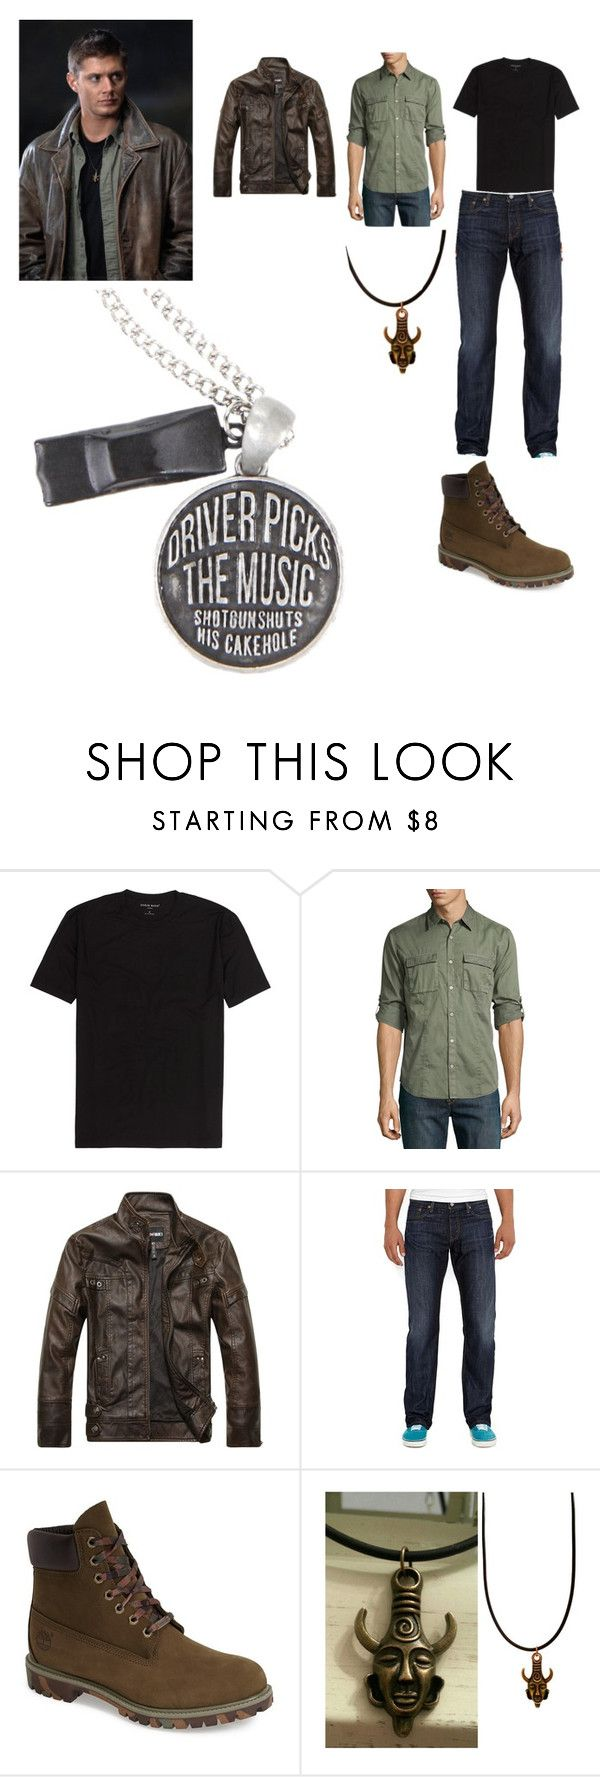 """""""Dean Winchesters Outfit"""" by trinaglover18 ❤ liked on Polyvore featuring John Varvatos * U.S.A., Levi's, Timberland, men's fashion and menswear"""